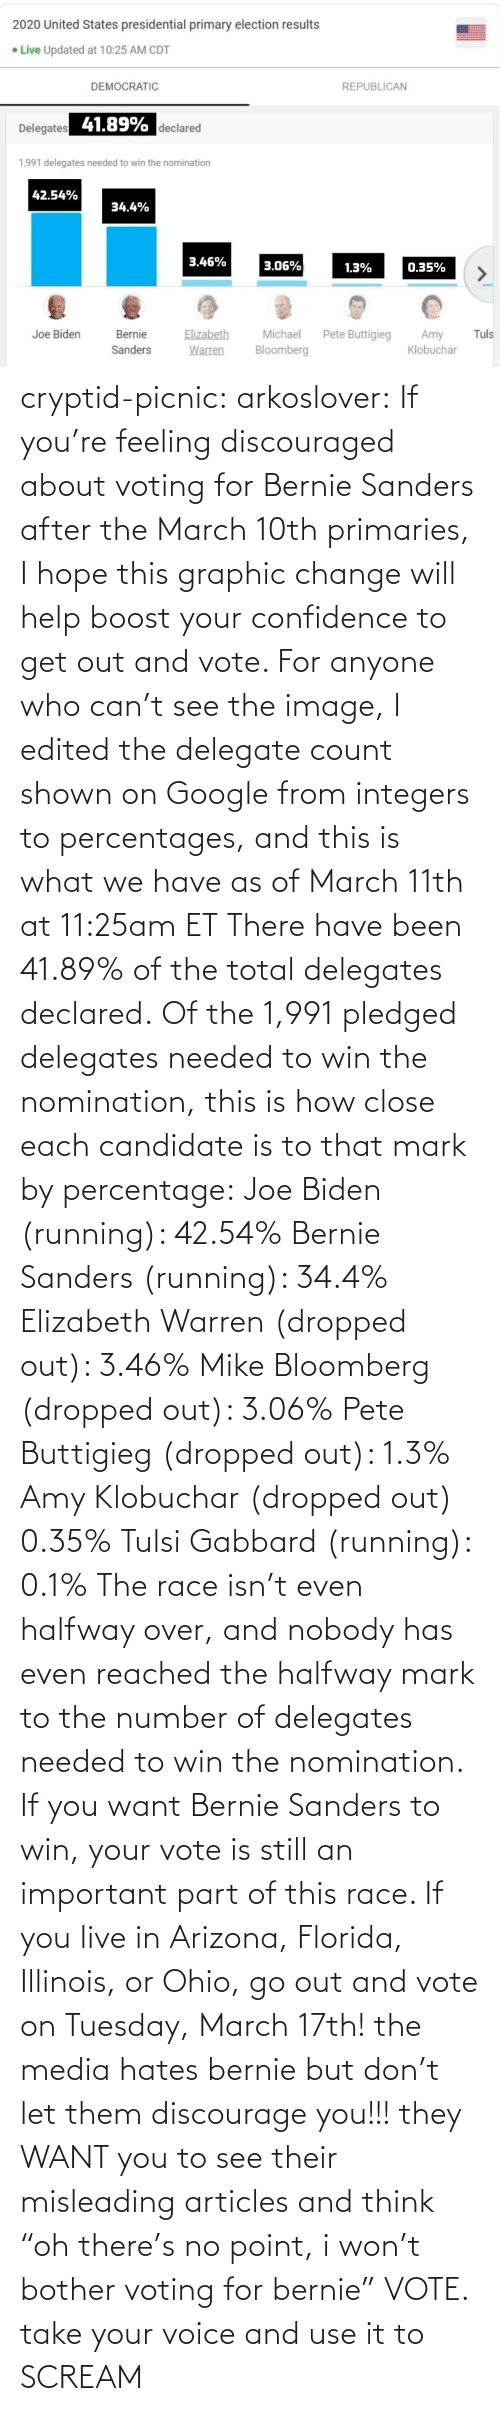 "Dropped: cryptid-picnic: arkoslover:   If you're feeling discouraged about voting for Bernie Sanders after the March 10th primaries, I hope this graphic change will help boost your confidence to get out and vote. For anyone who can't see the image, I edited the delegate count shown on Google from integers to percentages, and this is what we have as of March 11th at 11:25am ET There have been 41.89% of the total delegates declared. Of the 1,991 pledged delegates needed to win the nomination, this is how close each candidate is to that mark by percentage: Joe Biden (running): 42.54% Bernie Sanders (running): 34.4% Elizabeth Warren (dropped out): 3.46% Mike Bloomberg (dropped out): 3.06% Pete Buttigieg (dropped out): 1.3% Amy Klobuchar (dropped out) 0.35% Tulsi Gabbard (running): 0.1% The race isn't even halfway over, and nobody has even reached the halfway mark to the number of delegates needed to win the nomination. If you want Bernie Sanders to win, your vote is still an important part of this race. If you live in Arizona, Florida, Illinois, or Ohio, go out and vote on Tuesday, March 17th!    the media hates bernie but don't let them discourage you!!! they WANT you to see their misleading articles and think ""oh there's no point, i won't bother voting for bernie"" VOTE. take your voice and use it to SCREAM"